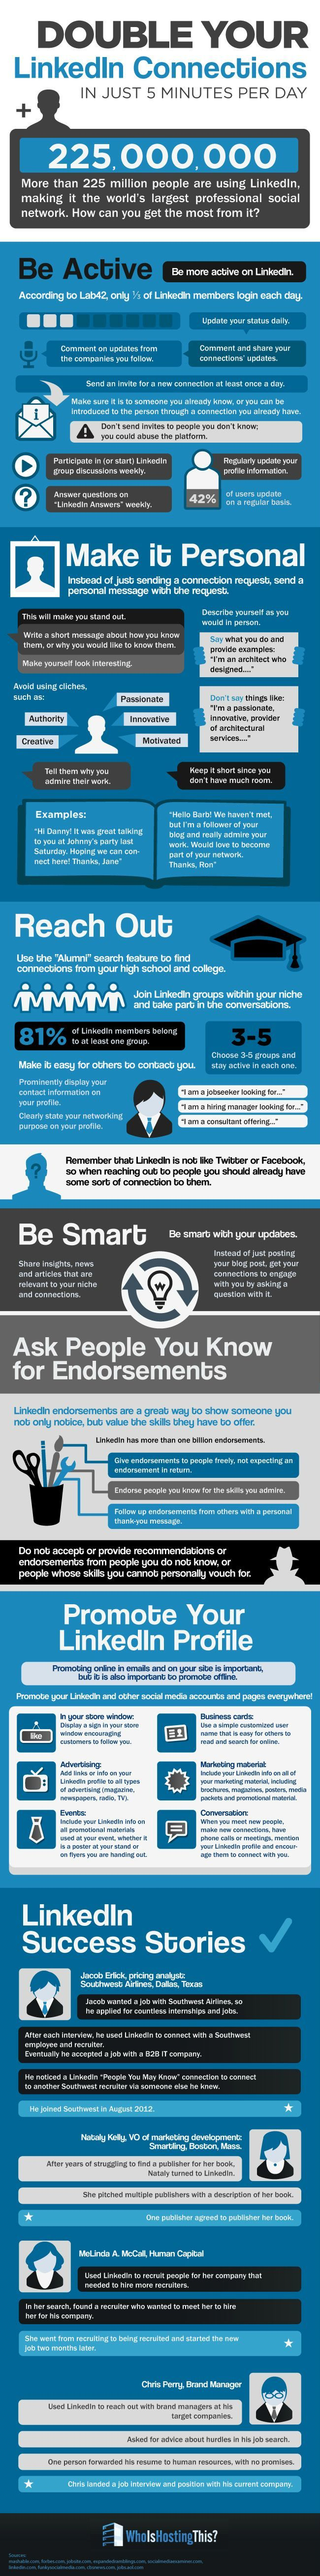 10 tips to double your LinkedIn connections